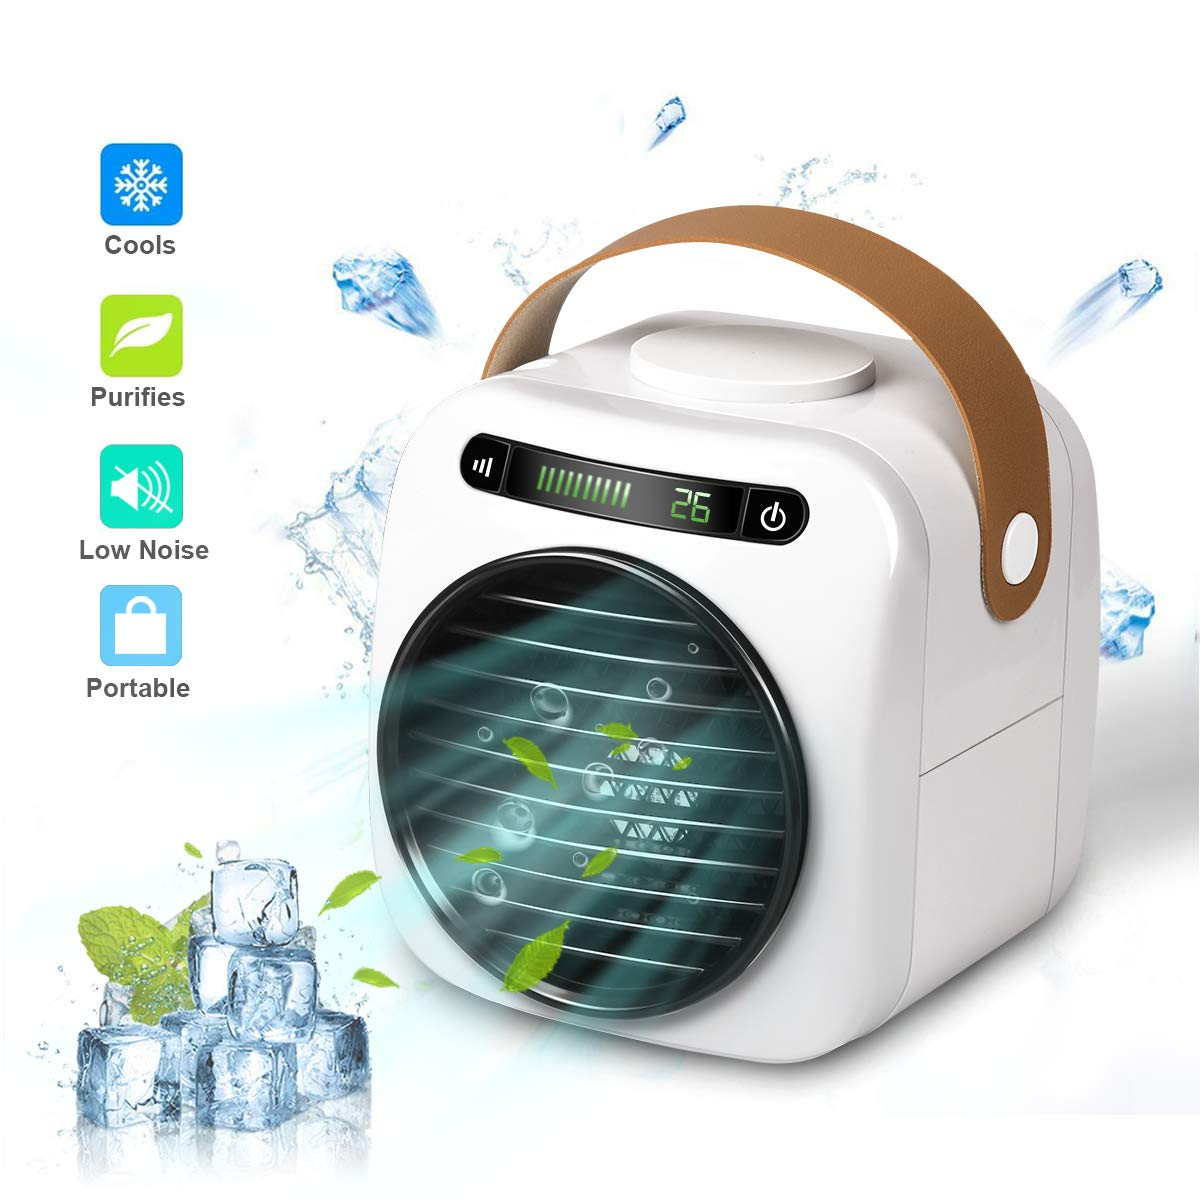 Conditioner Personal Portable Humidifier Purifier